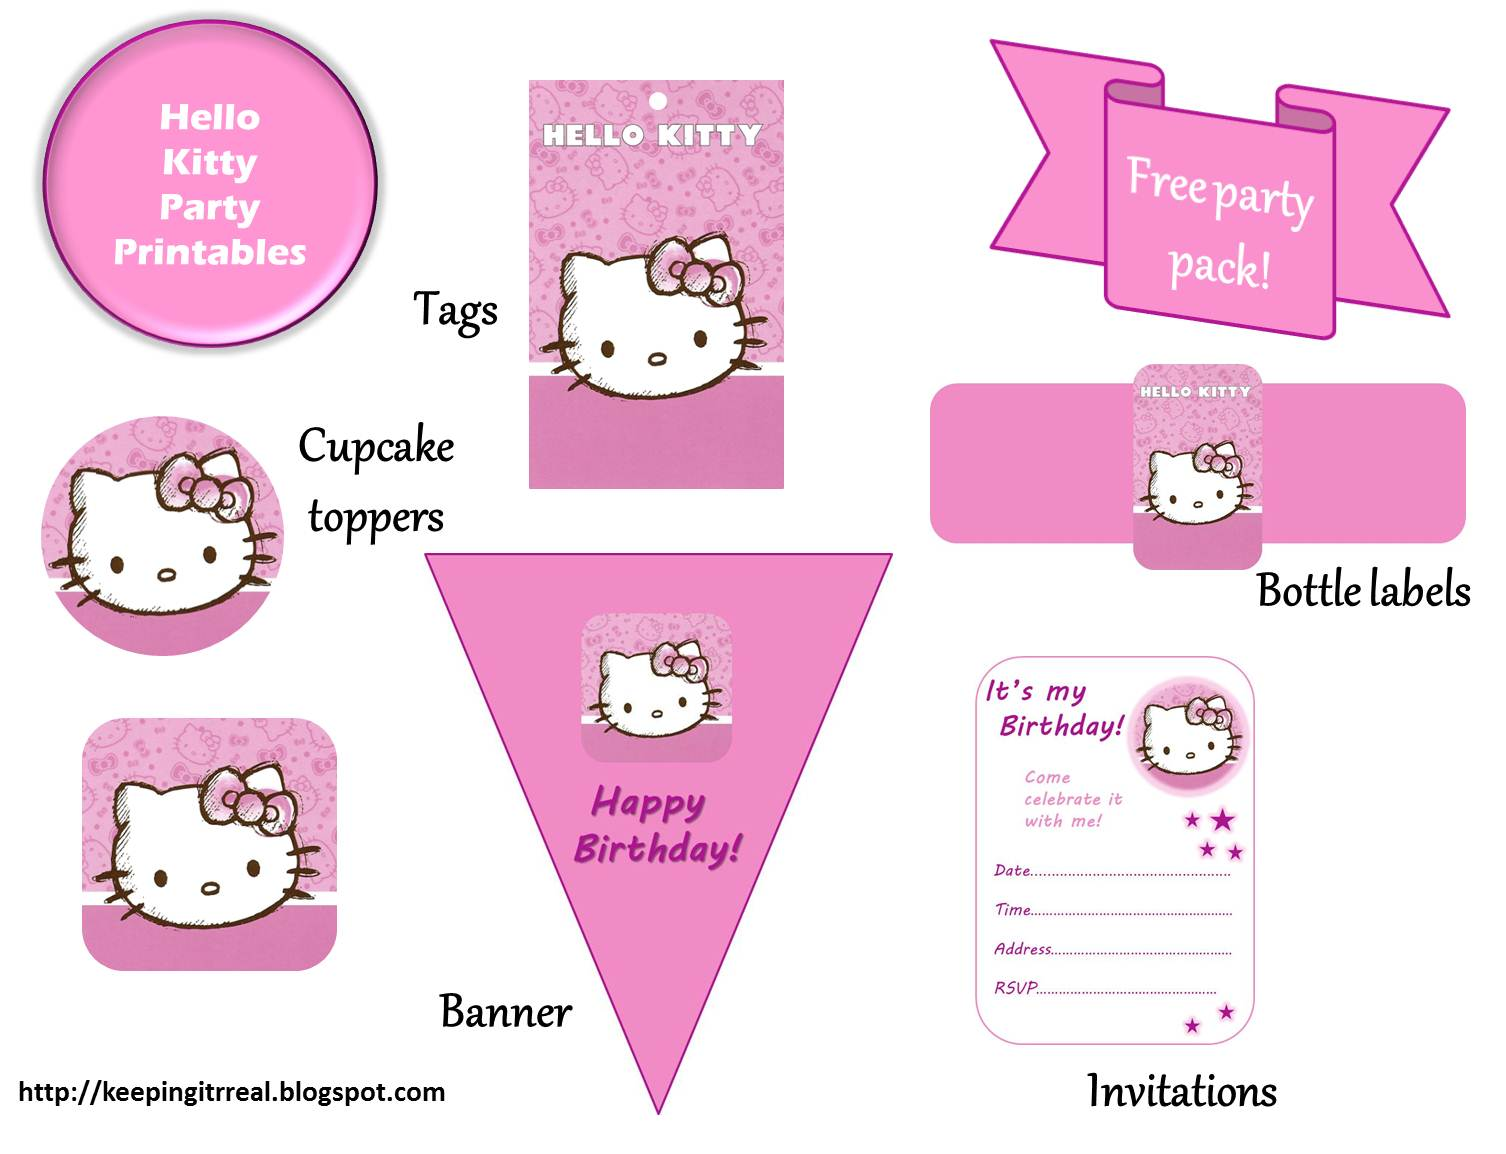 Hello Kitty Party Pack